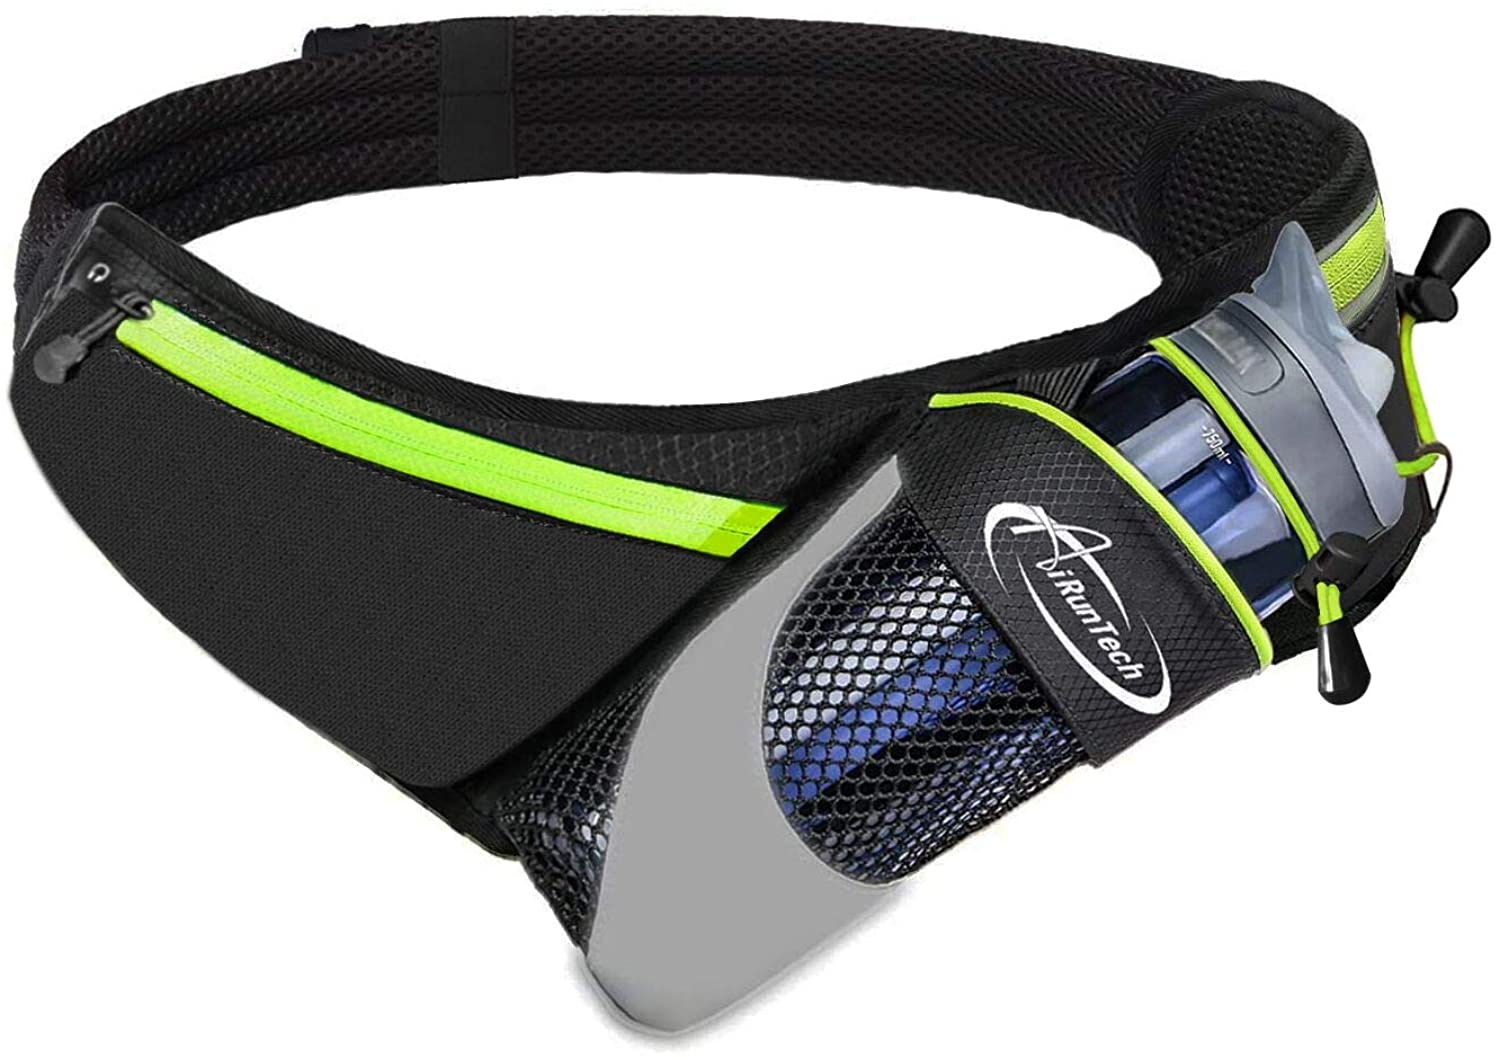 AiRunTech Upgraded No Bounce Hydration Belt Size D be Cut Can OFFicial mail order to Limited Special Price